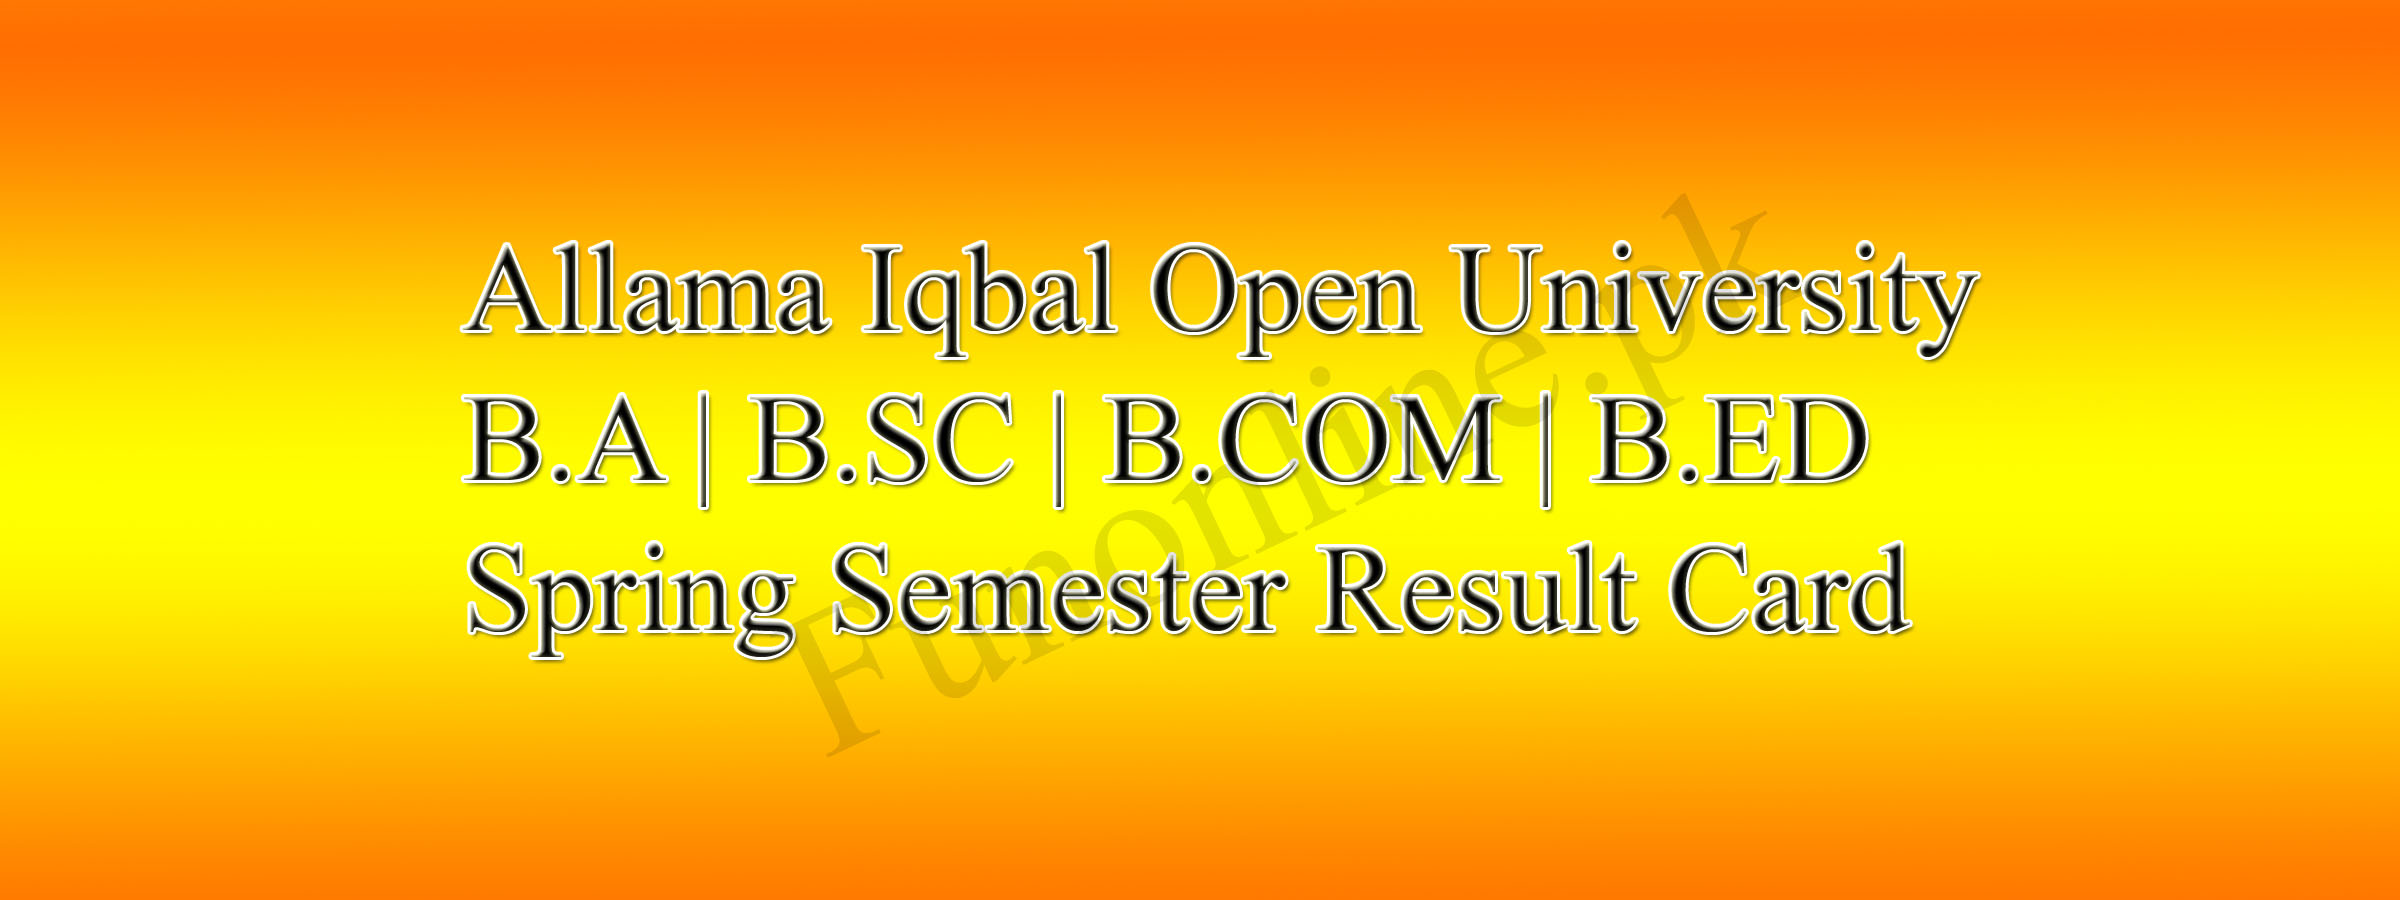 aiou ba, bed, bsc, bcom spring result 2017